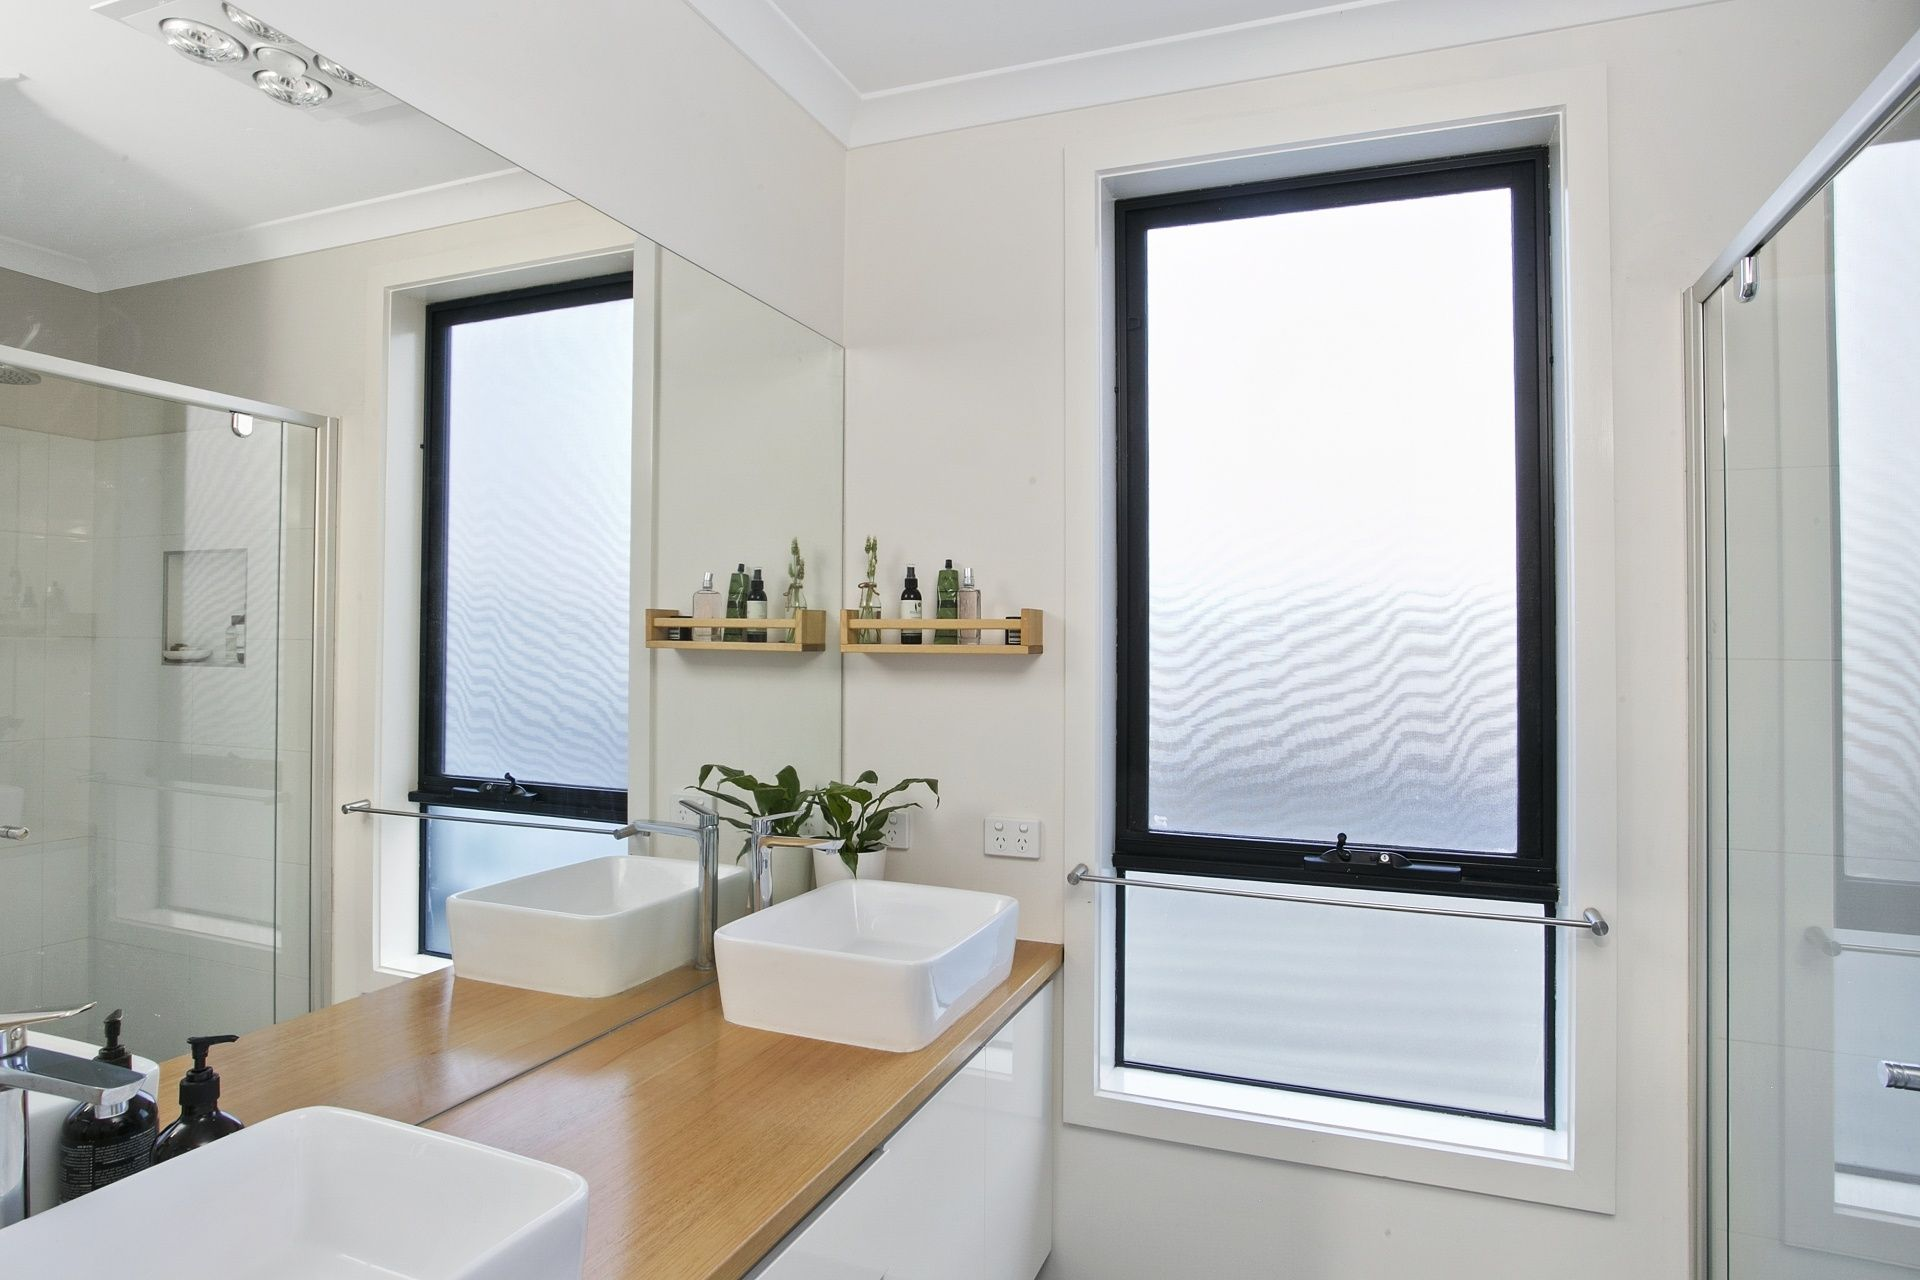 Sold property undisclosed for 5 barwon terrace barwon for 97 the terrace ocean grove